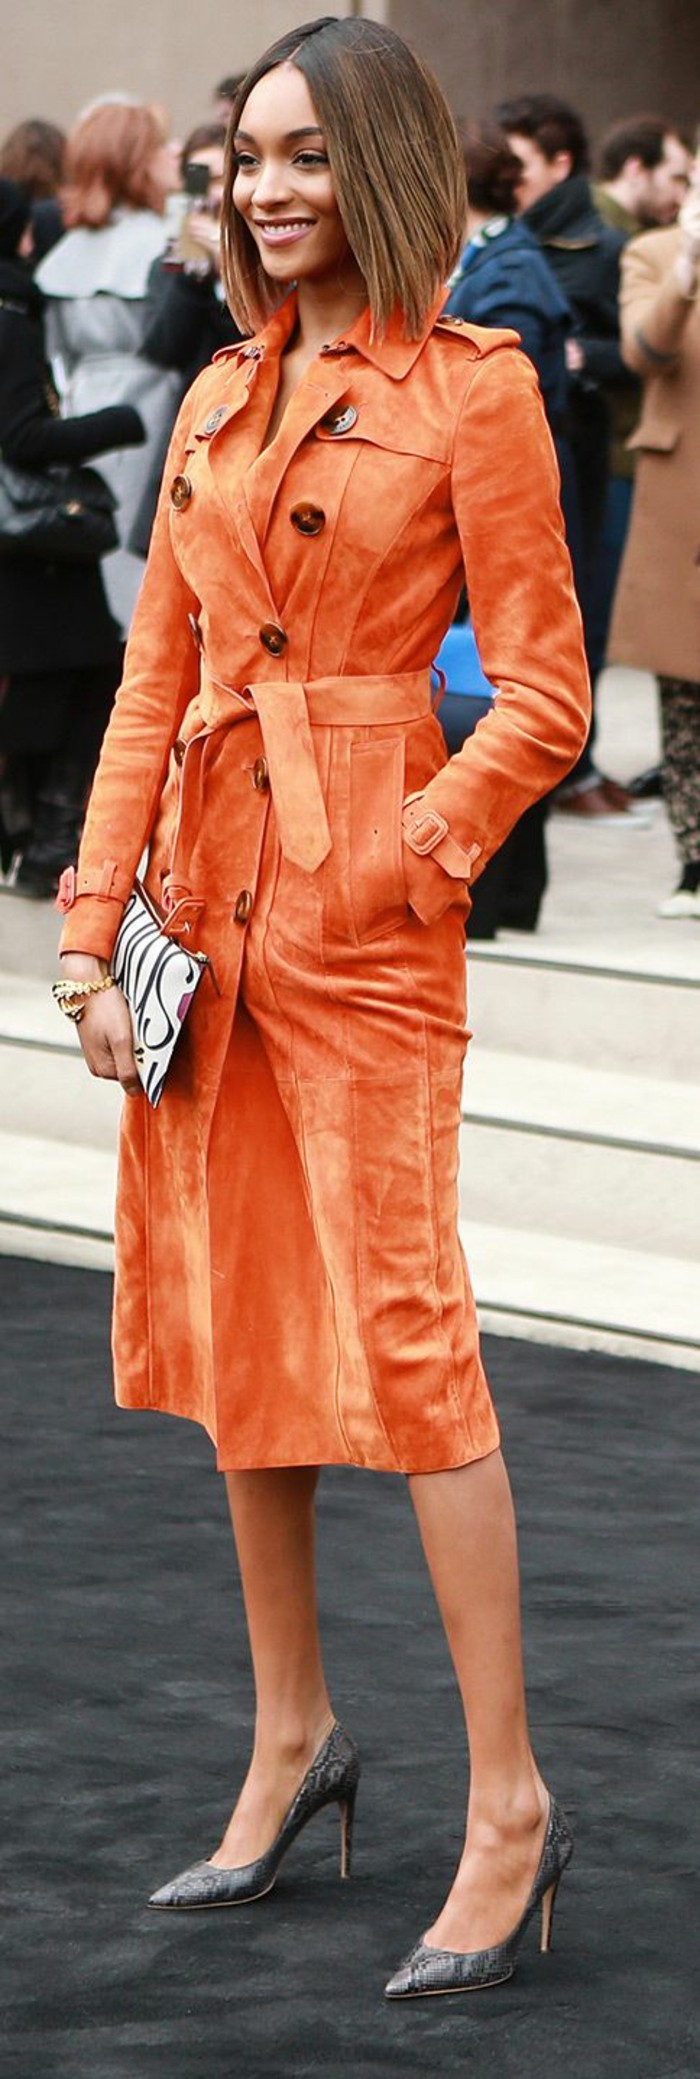 trench-femme-en-orange-vif-bonne-mine